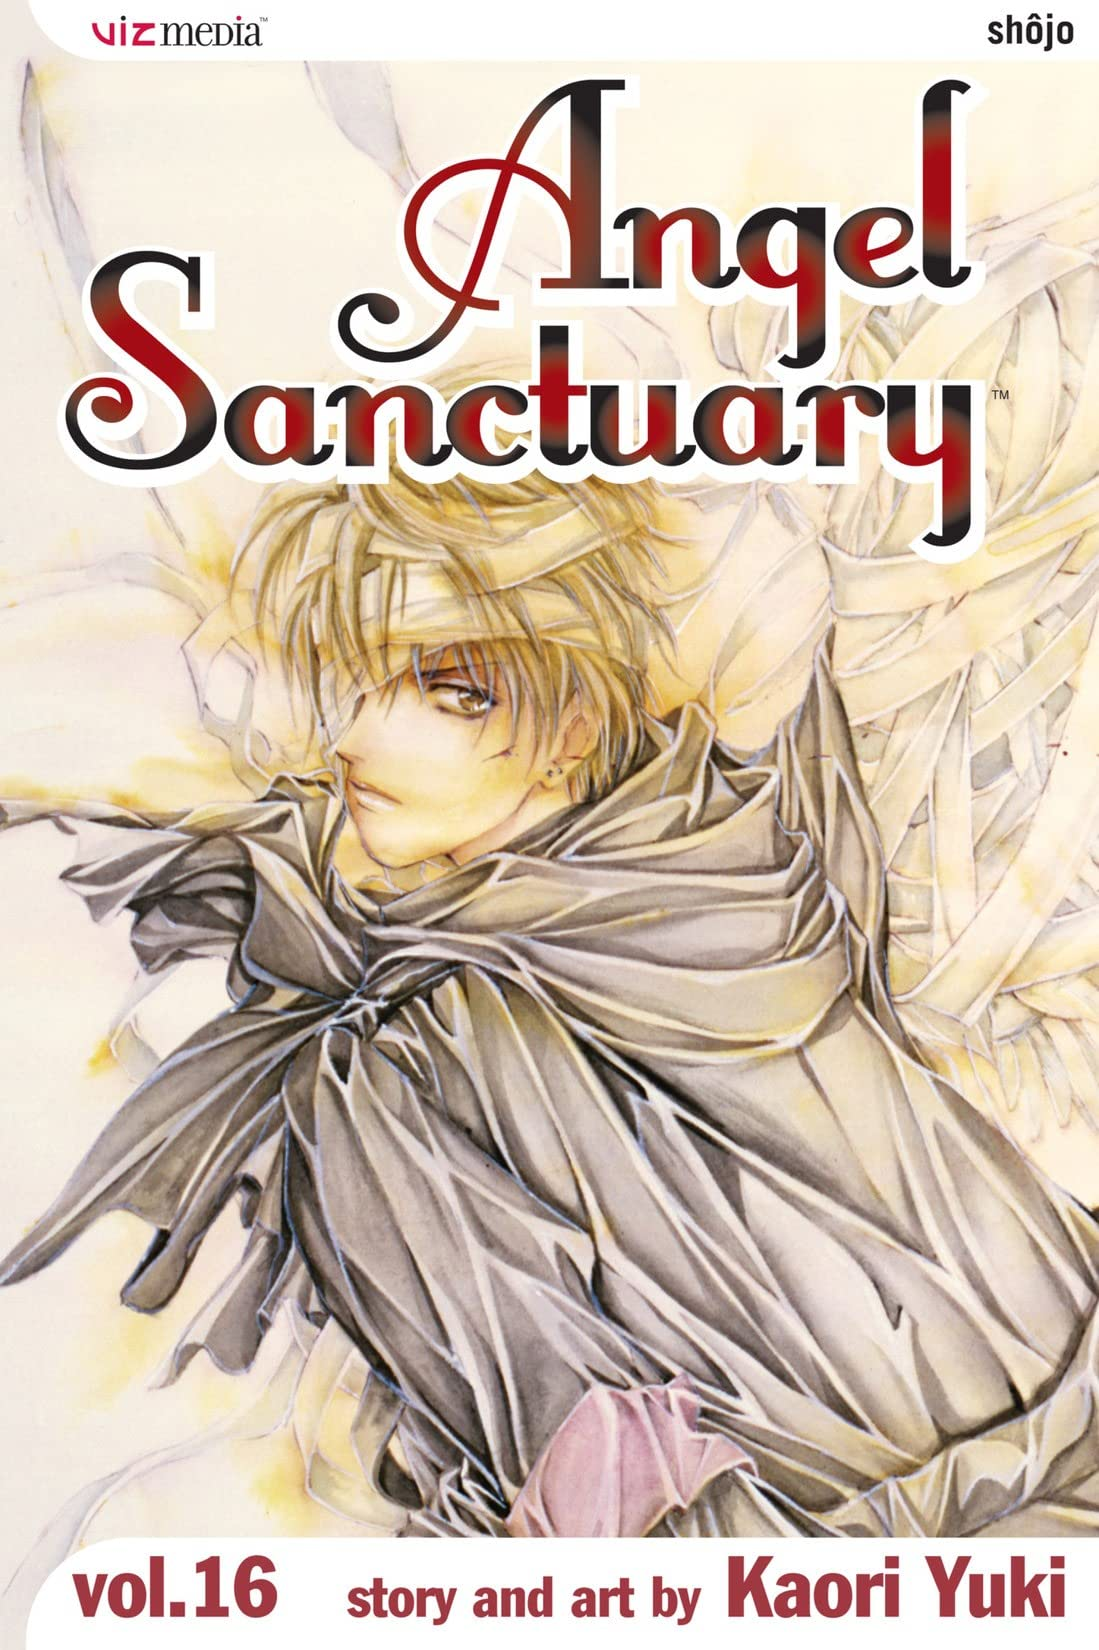 Angel Sanctuary Vol. 16